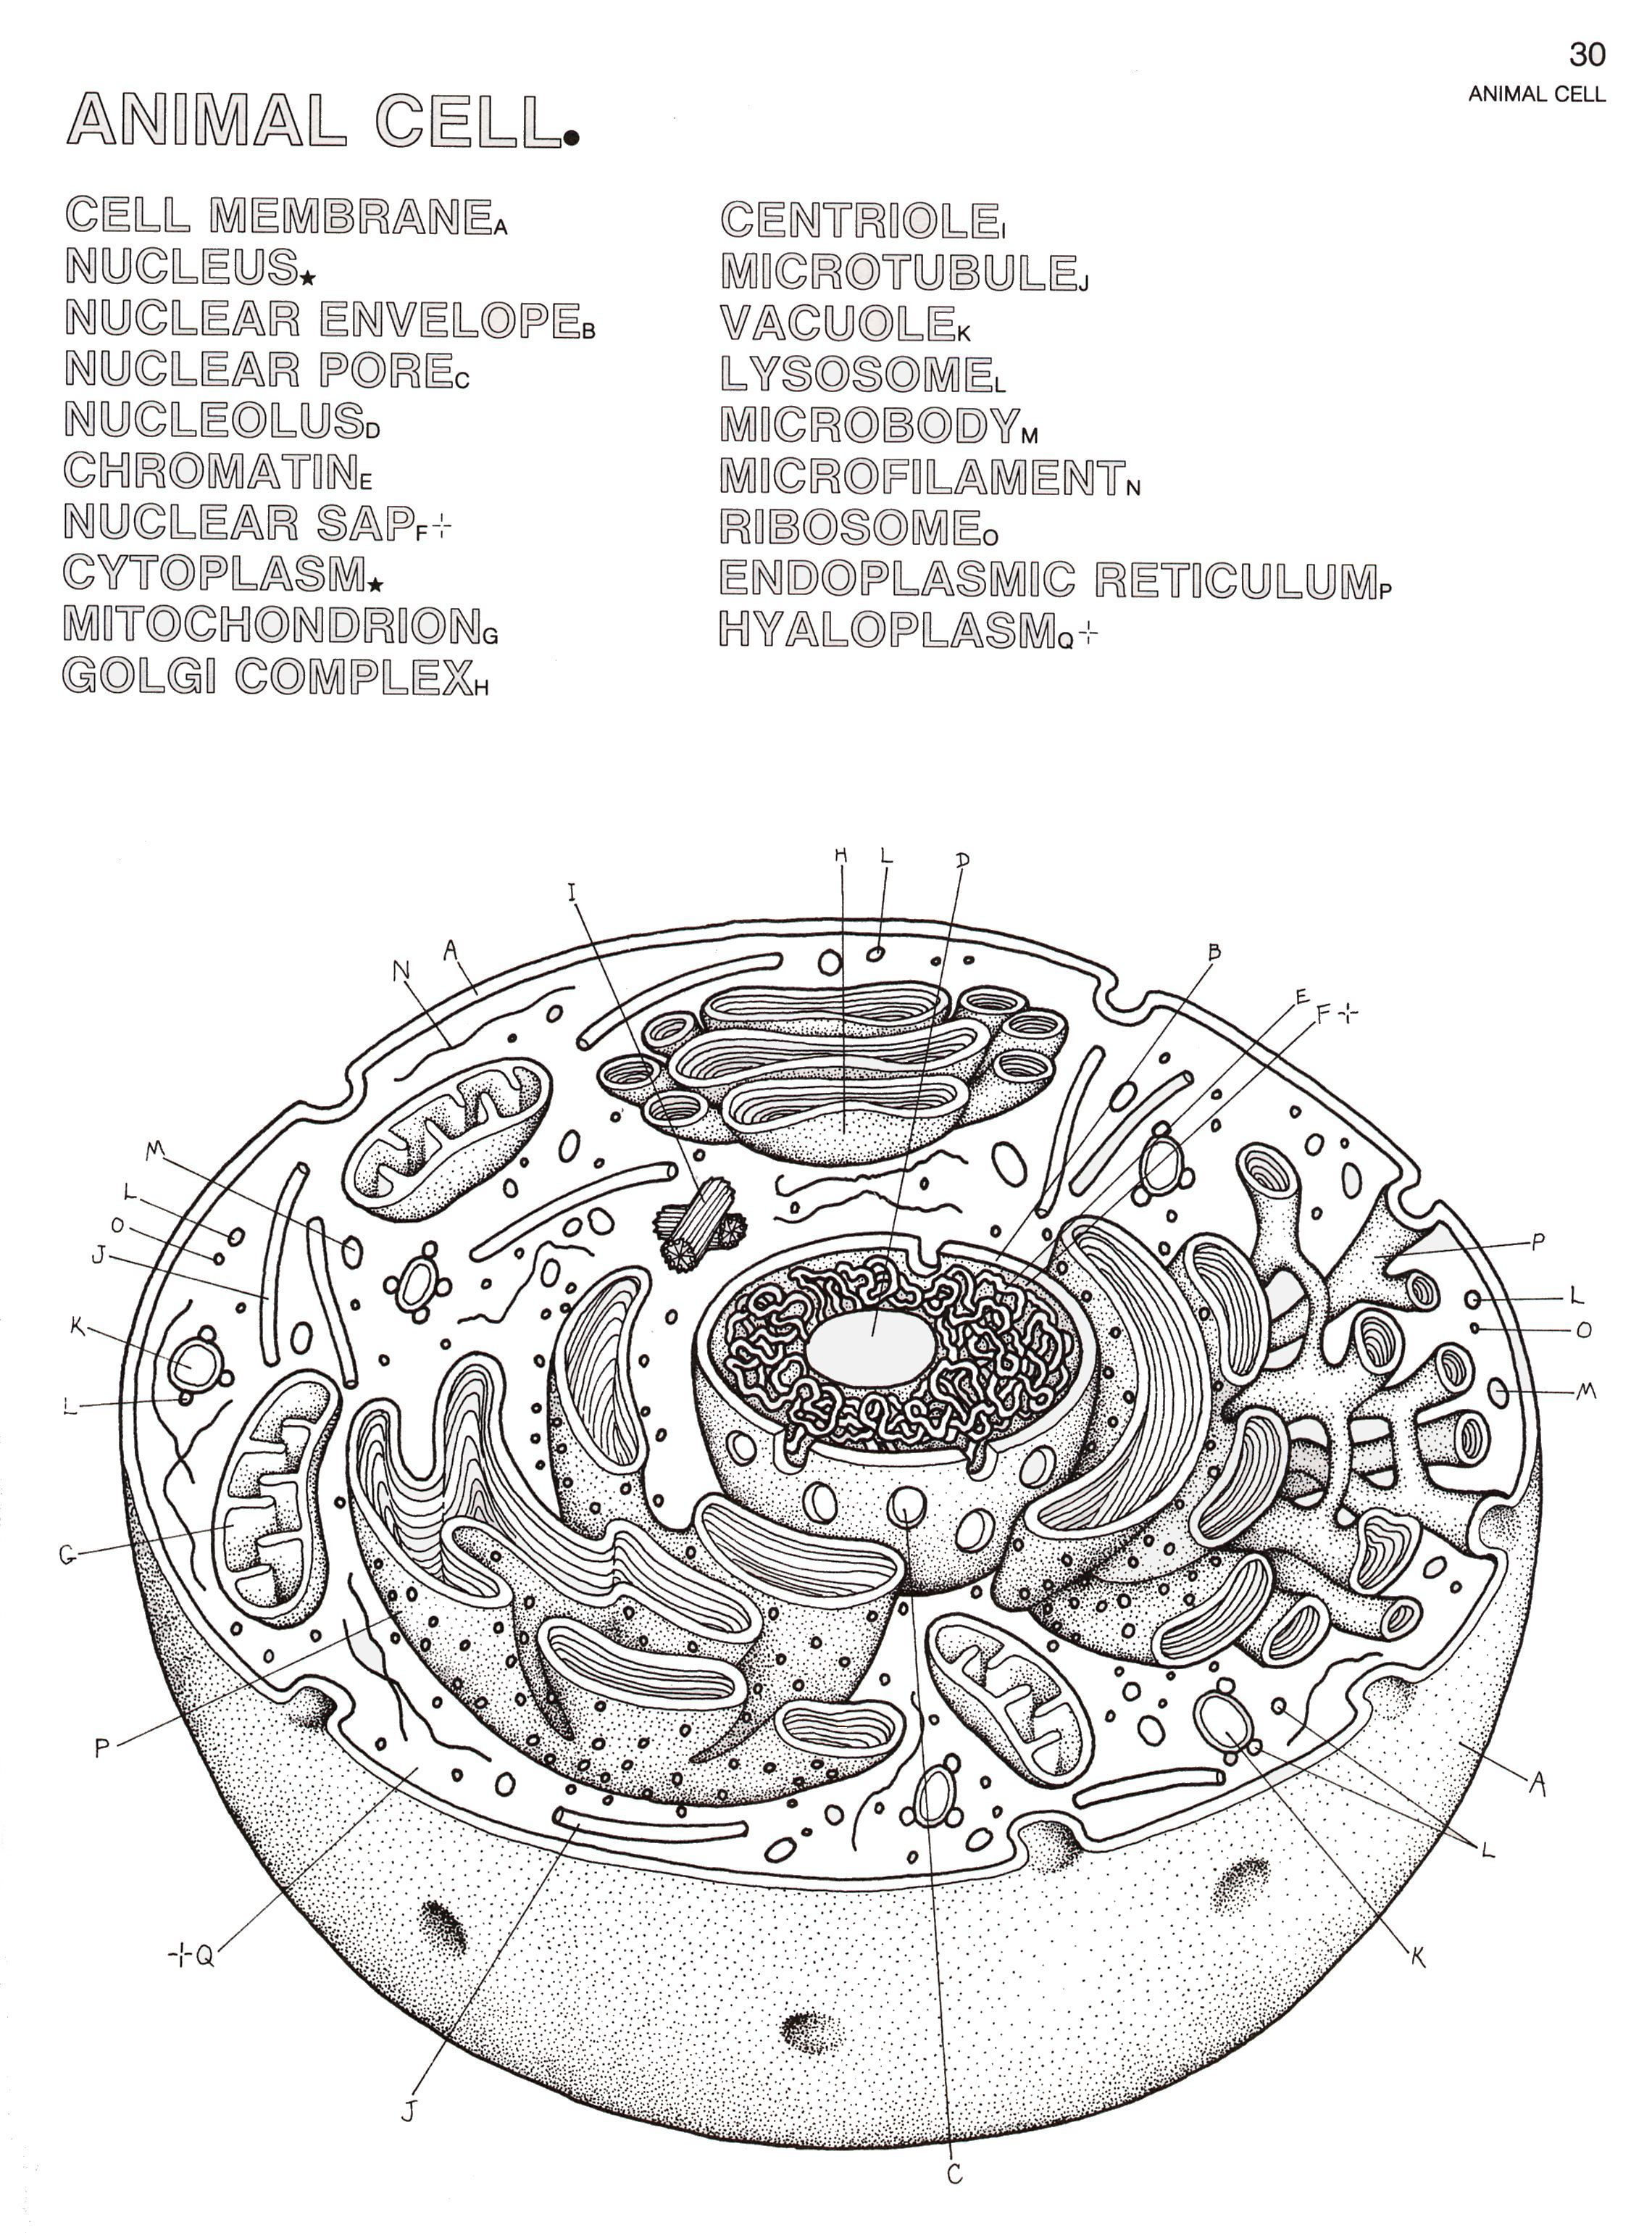 Biology Coloring Pages Book Jpg 2280 3081 Cells Worksheet Animal Cells Worksheet Plant And Animal Cells